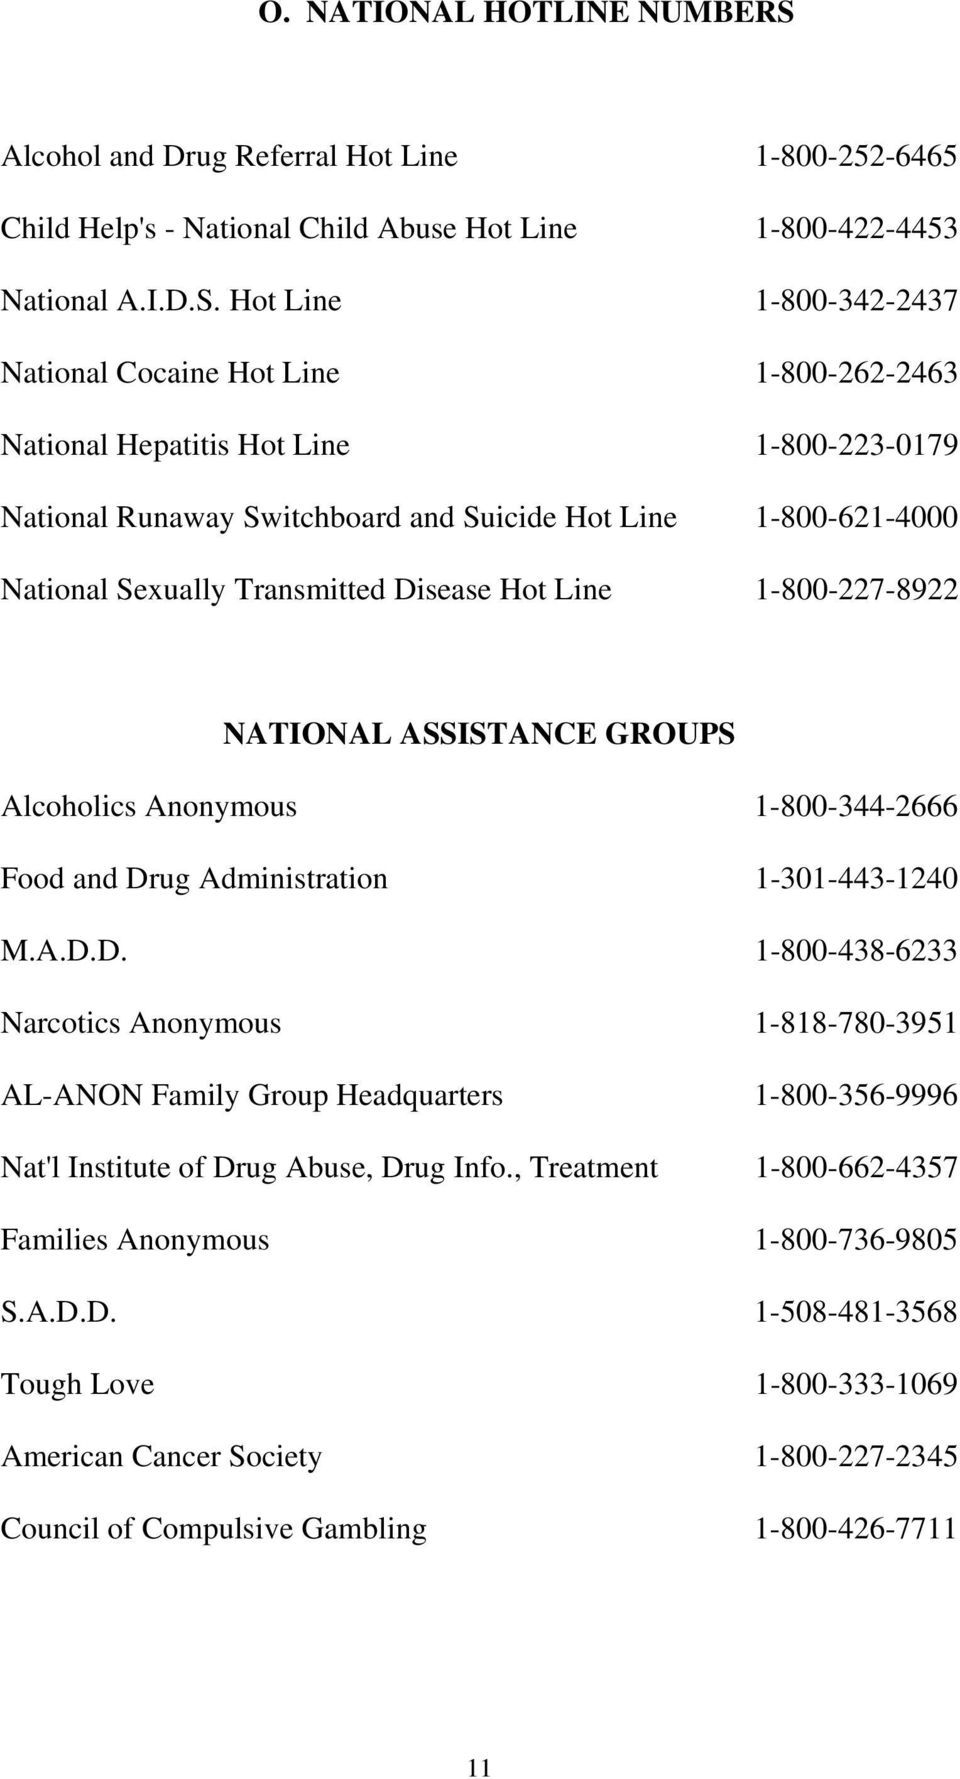 Hot Line 1-800-342-2437 National Cocaine Hot Line 1-800-262-2463 National Hepatitis Hot Line 1-800-223-0179 National Runaway Switchboard and Suicide Hot Line 1-800-621-4000 National Sexually